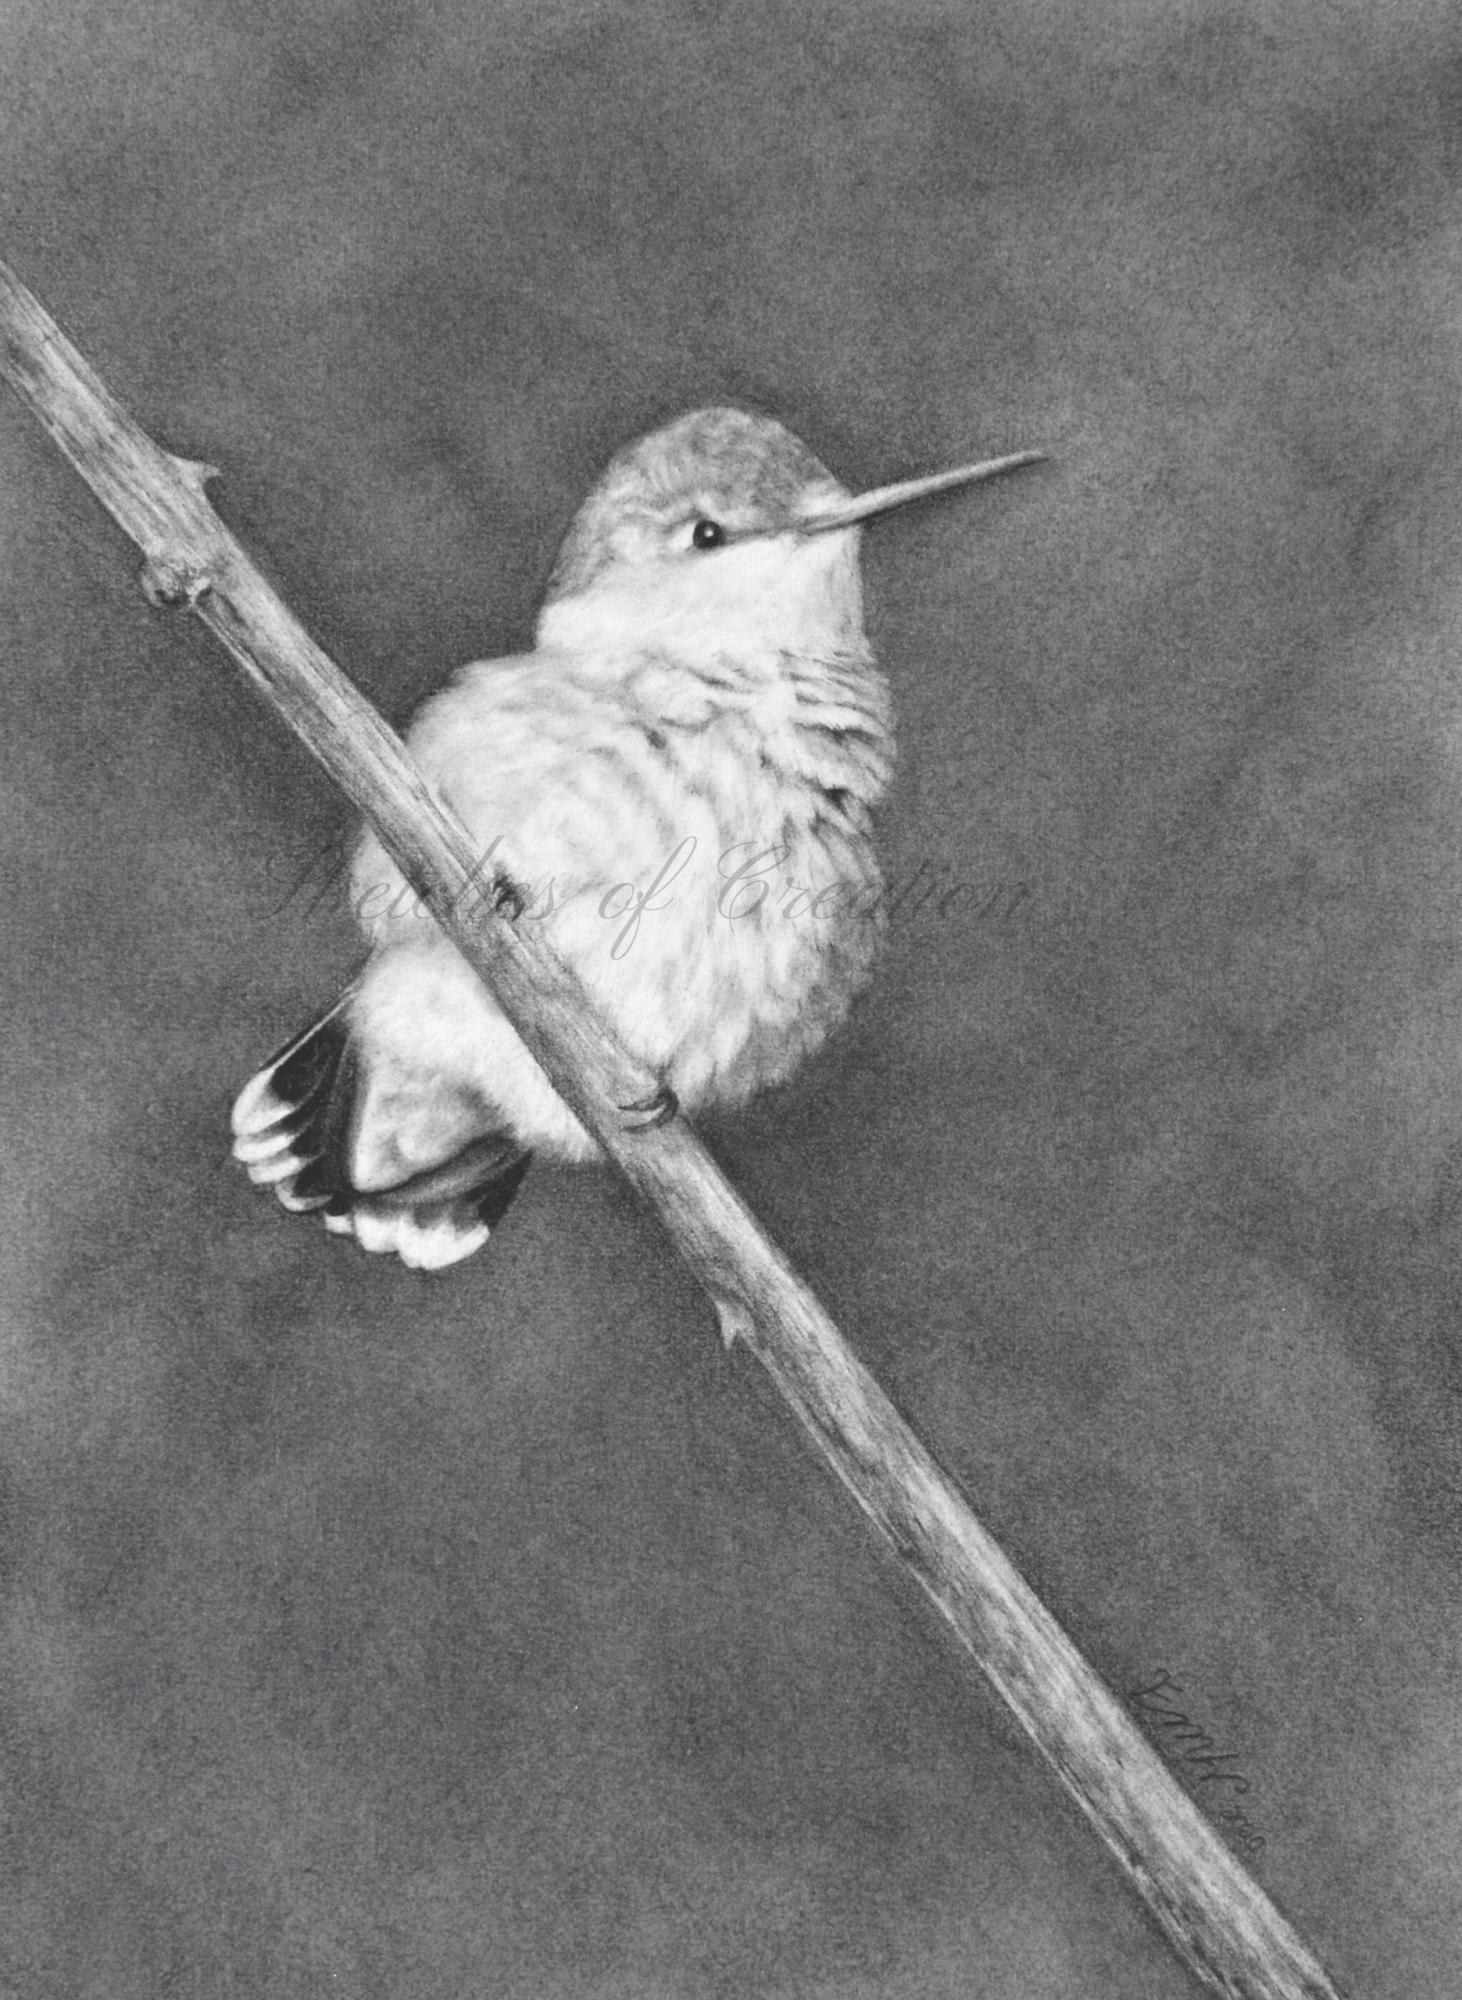 'Contentment' a drawing of a fluffy female Ruby-throated Hummingbird. 5x7 inches. Completed September 2020